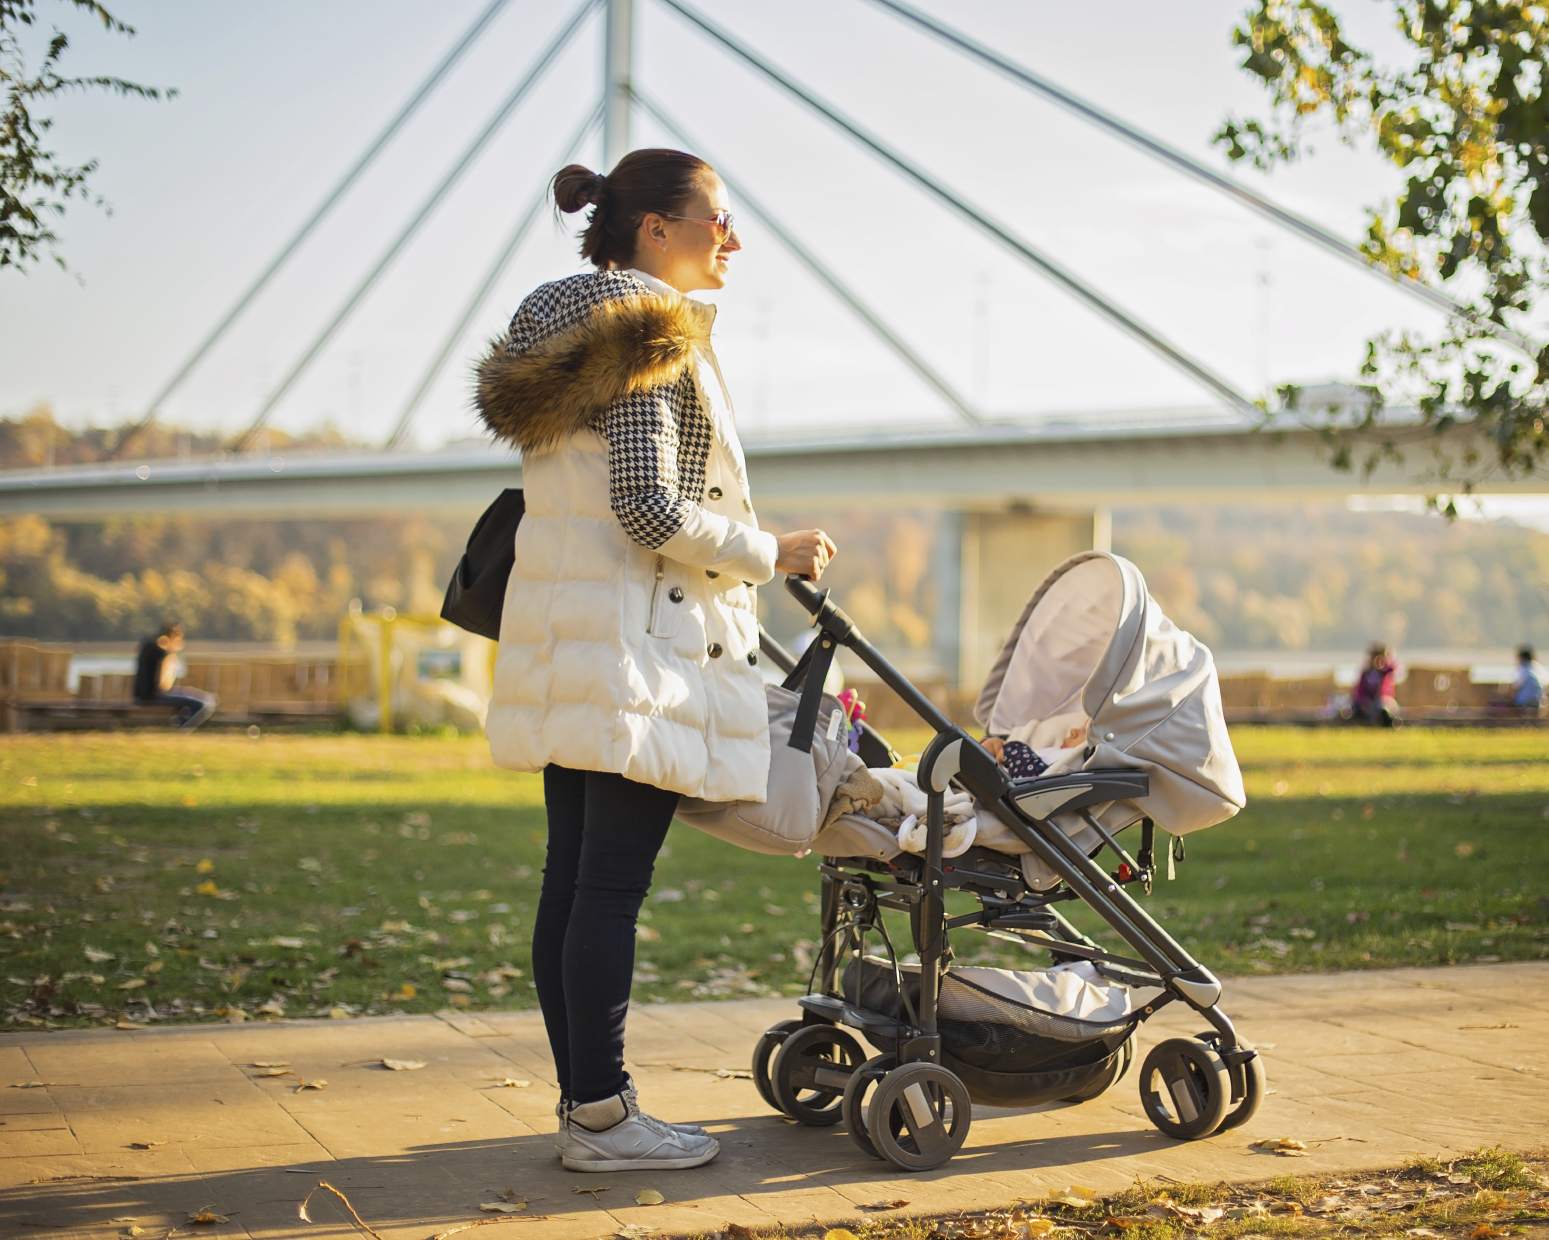 To the man who cat-called me while I was pushing my son in a stroller